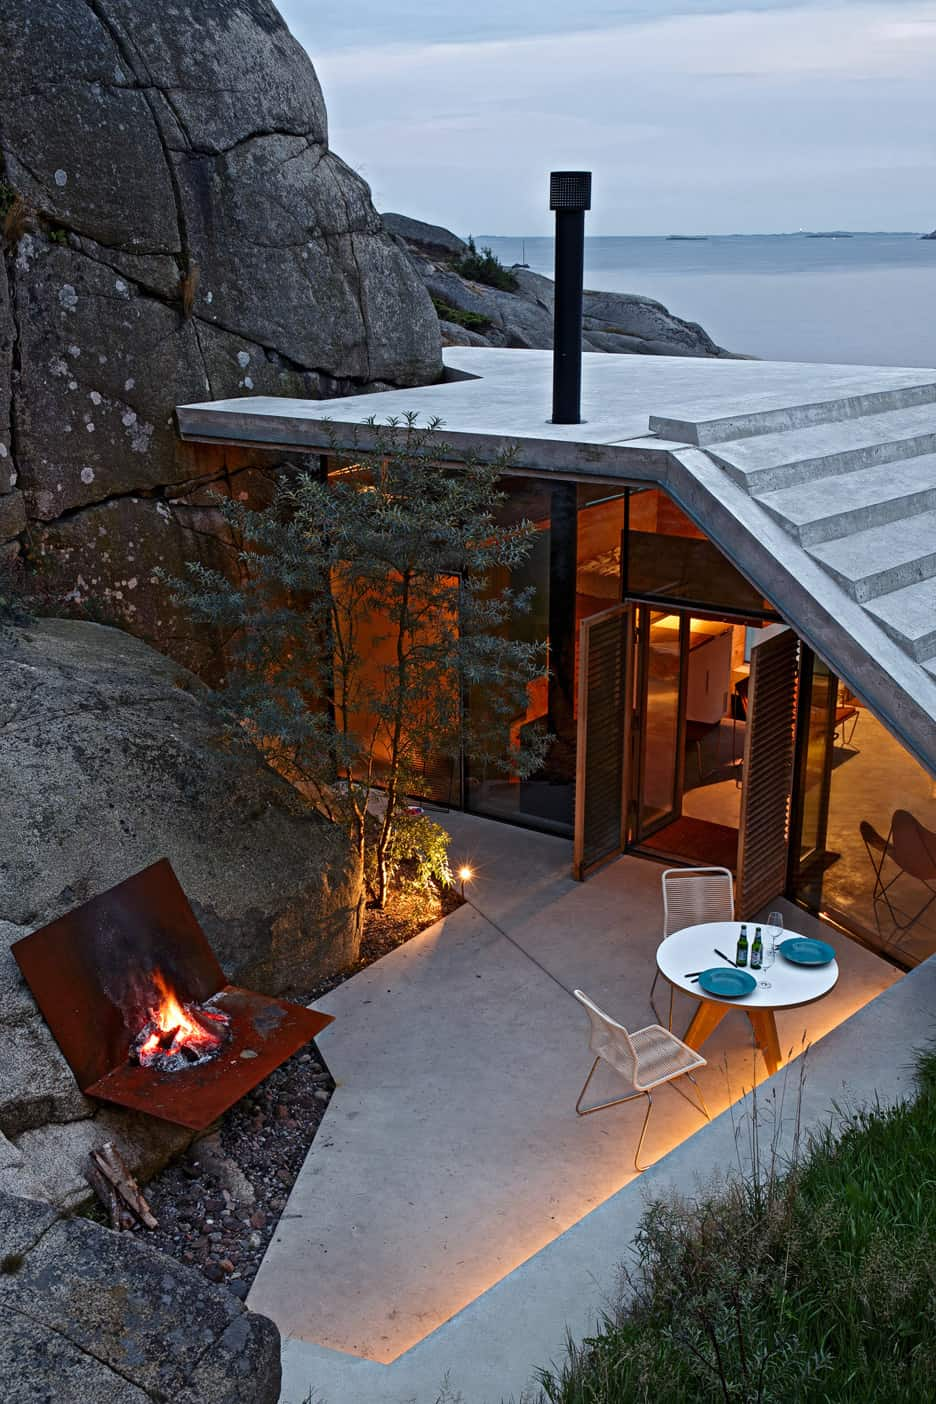 Seaside Cabin on the Rocks in Norway: Knapphullet by Lund Hagem on